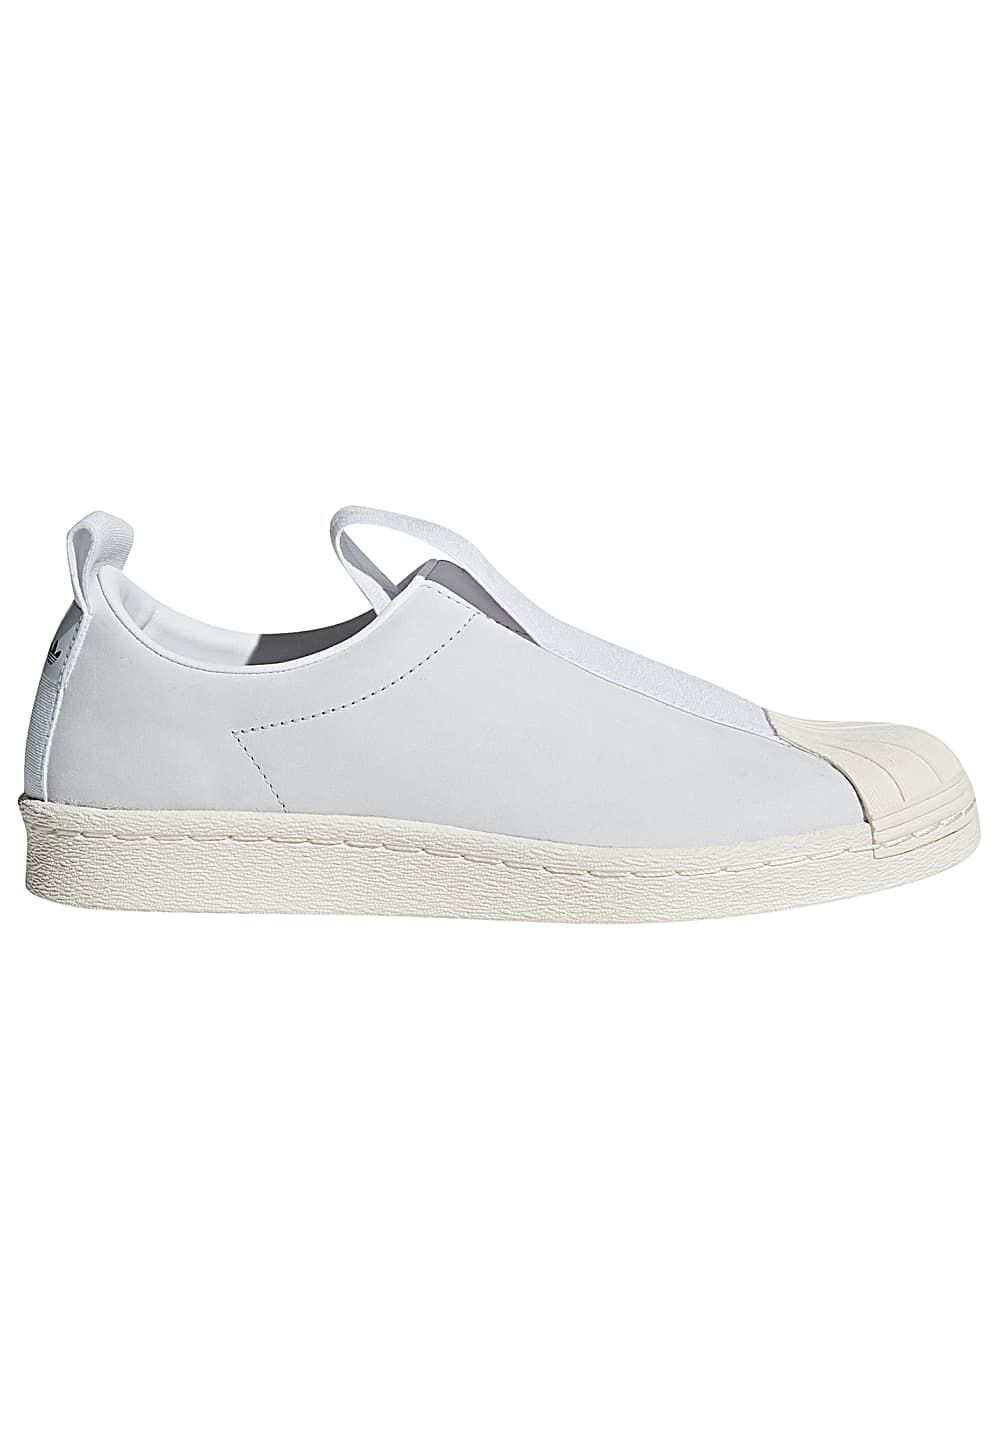 Kaufen Herren Damen Adidas Originals Superstar Slip On